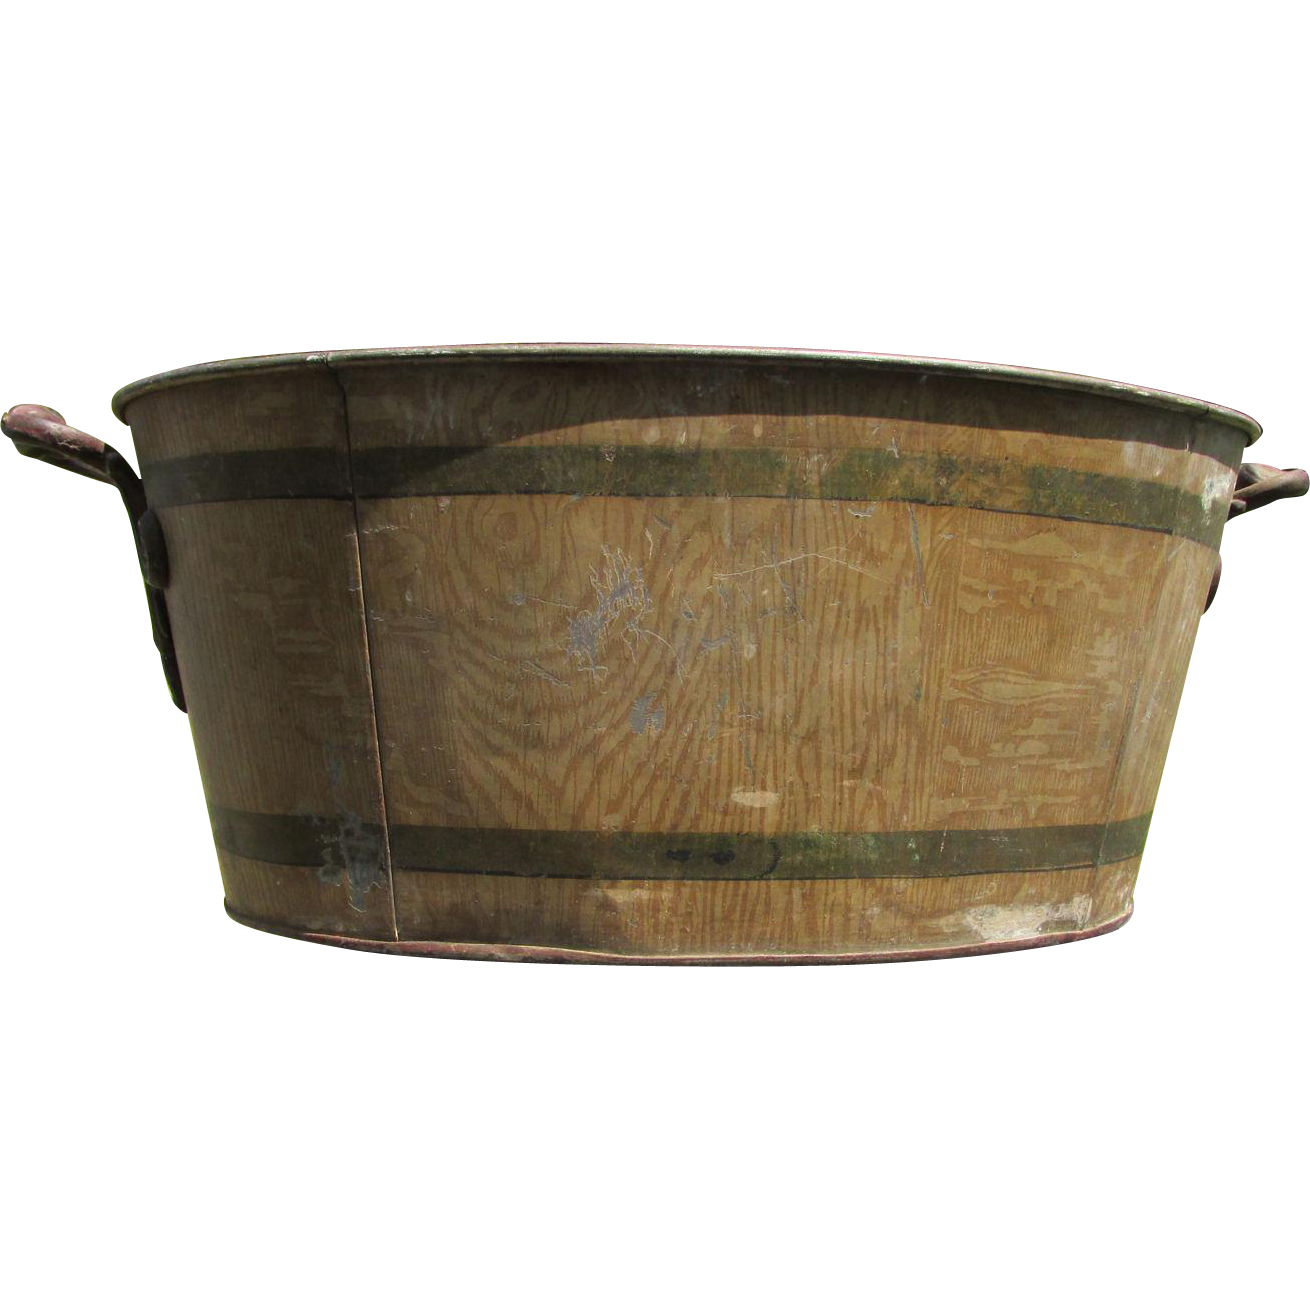 Cast Iron Wash Tub : 19thC Victorian Tole Painted Wash Tub, Basin from neatcurios on Ruby ...